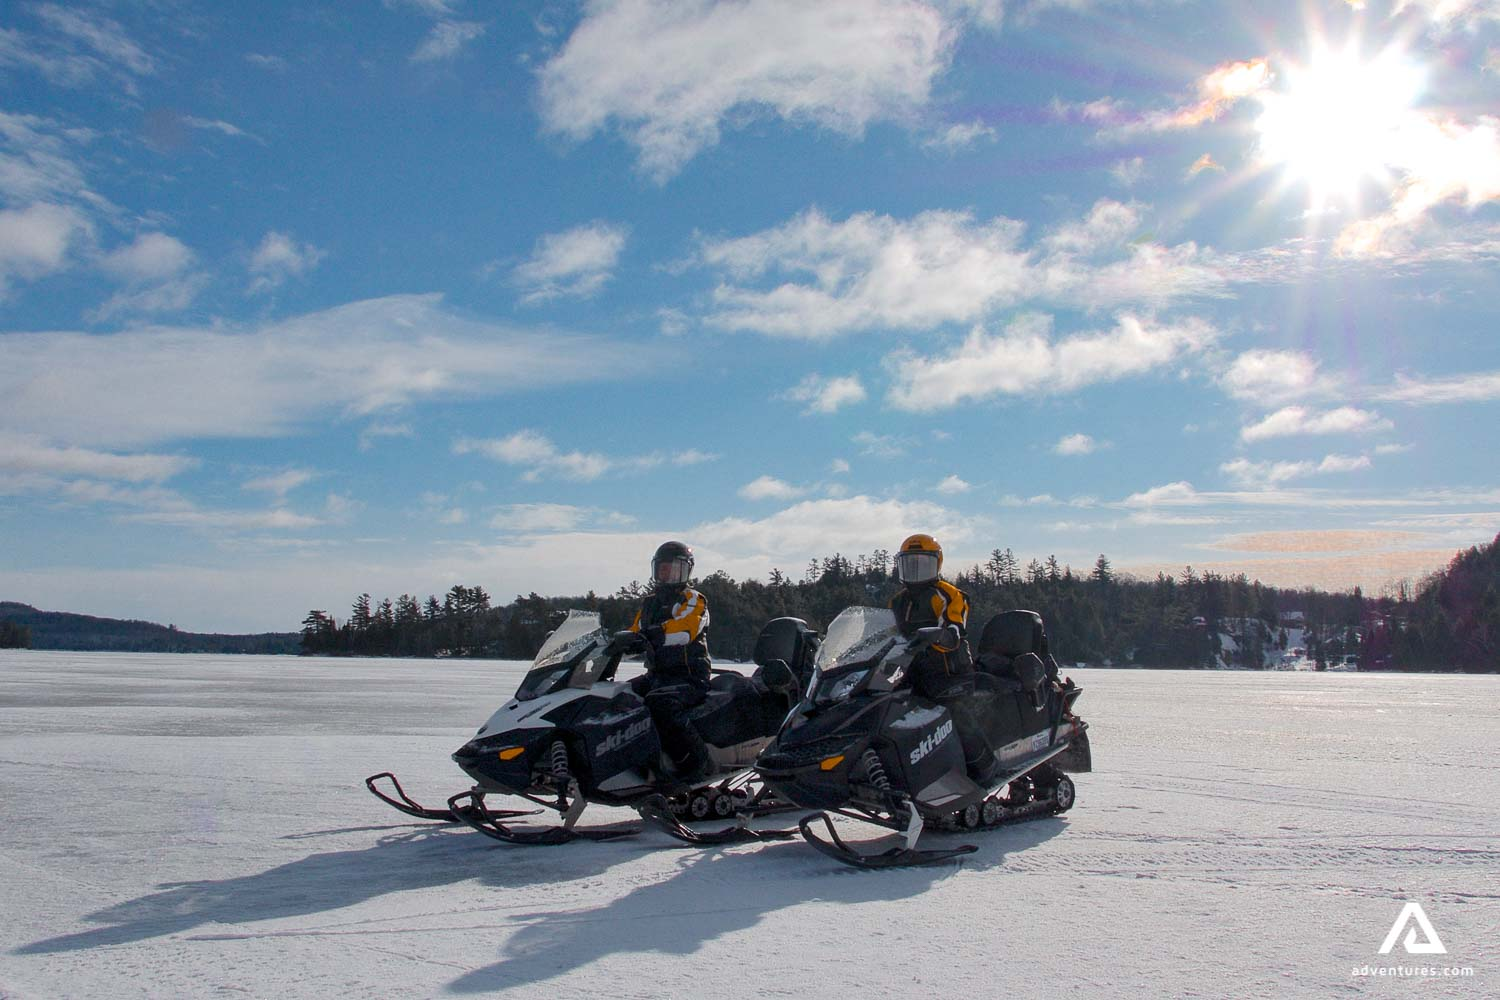 Snowmobiling in the sunny day